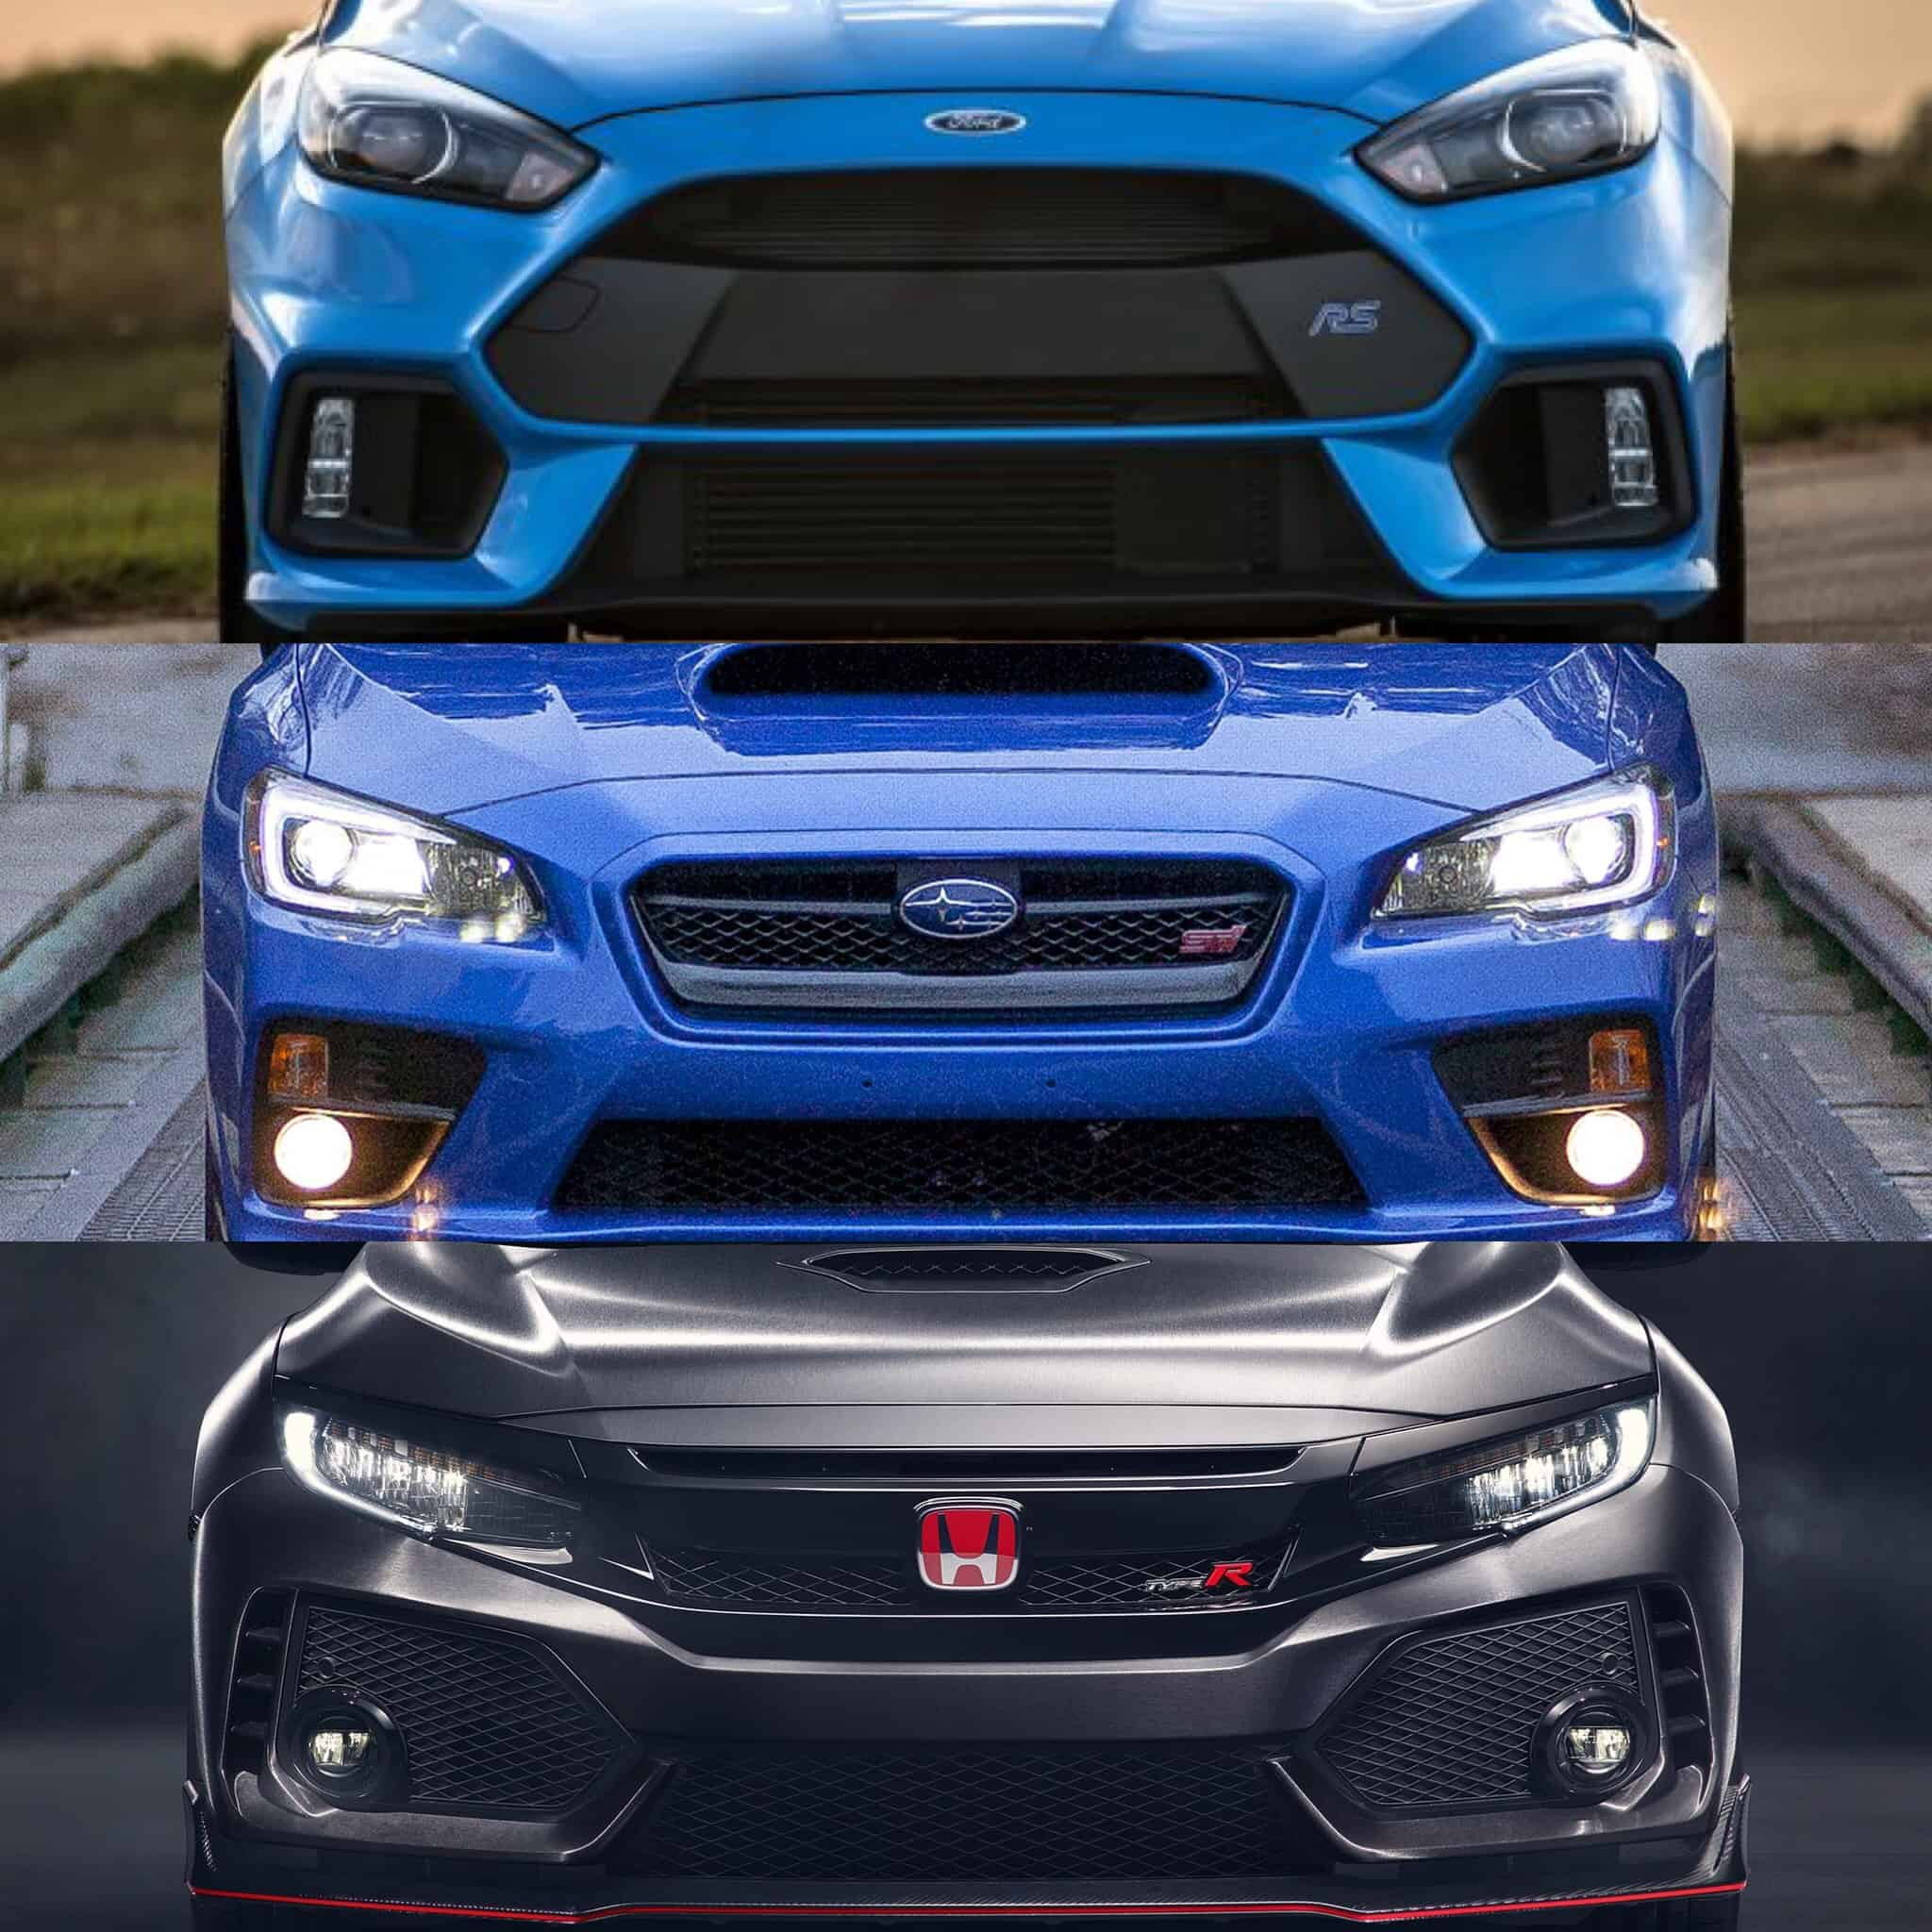 ford focus rs vs honda civic type r vs subaru wrx sti. Black Bedroom Furniture Sets. Home Design Ideas